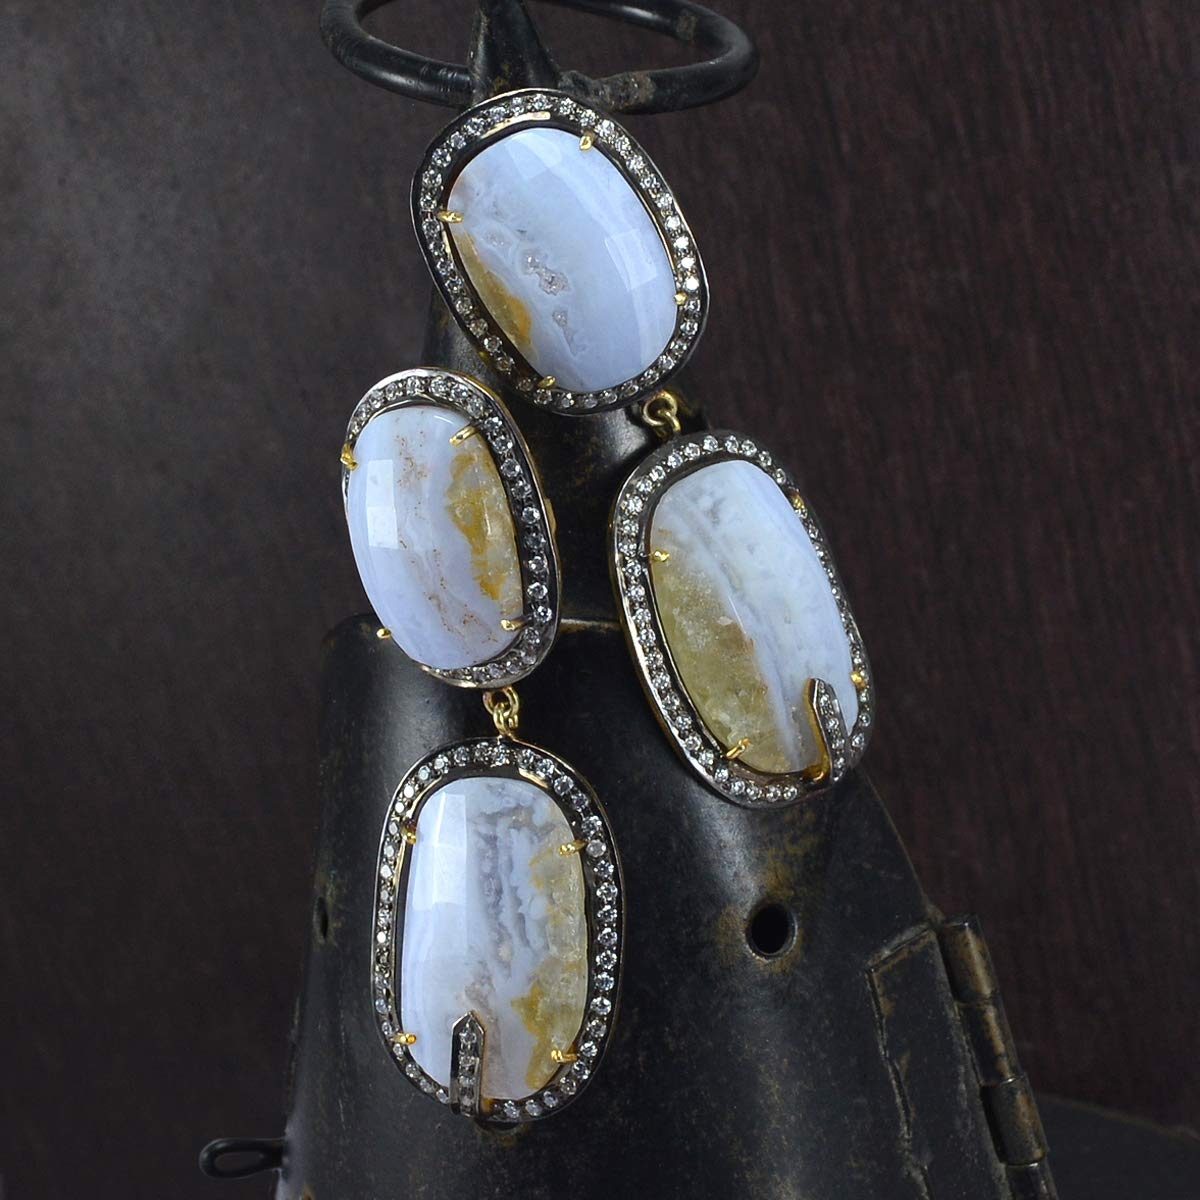 Vermeil 925 Sterling Silver Handmade Jewelry Manufacturer Indian Handcrafted Earring Blue Lace agate /& CZ Large Dangle Earring Jaipur Rajasthan India